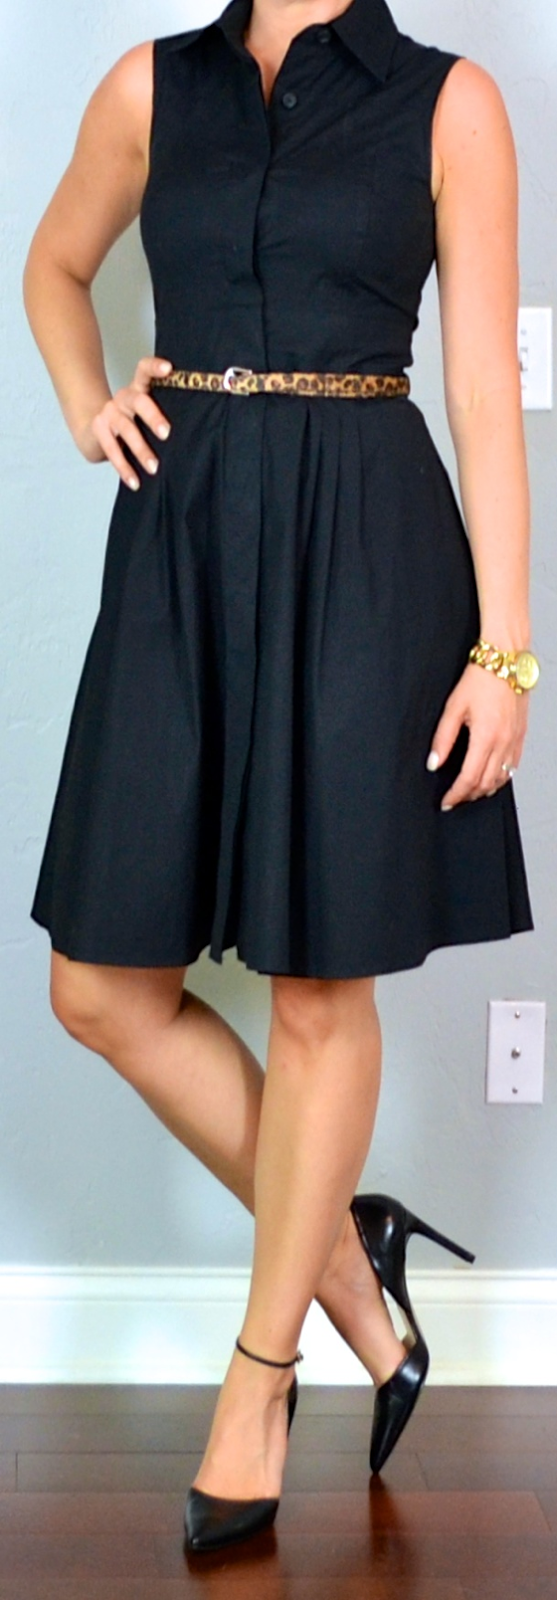 561cb-blackshirtdress